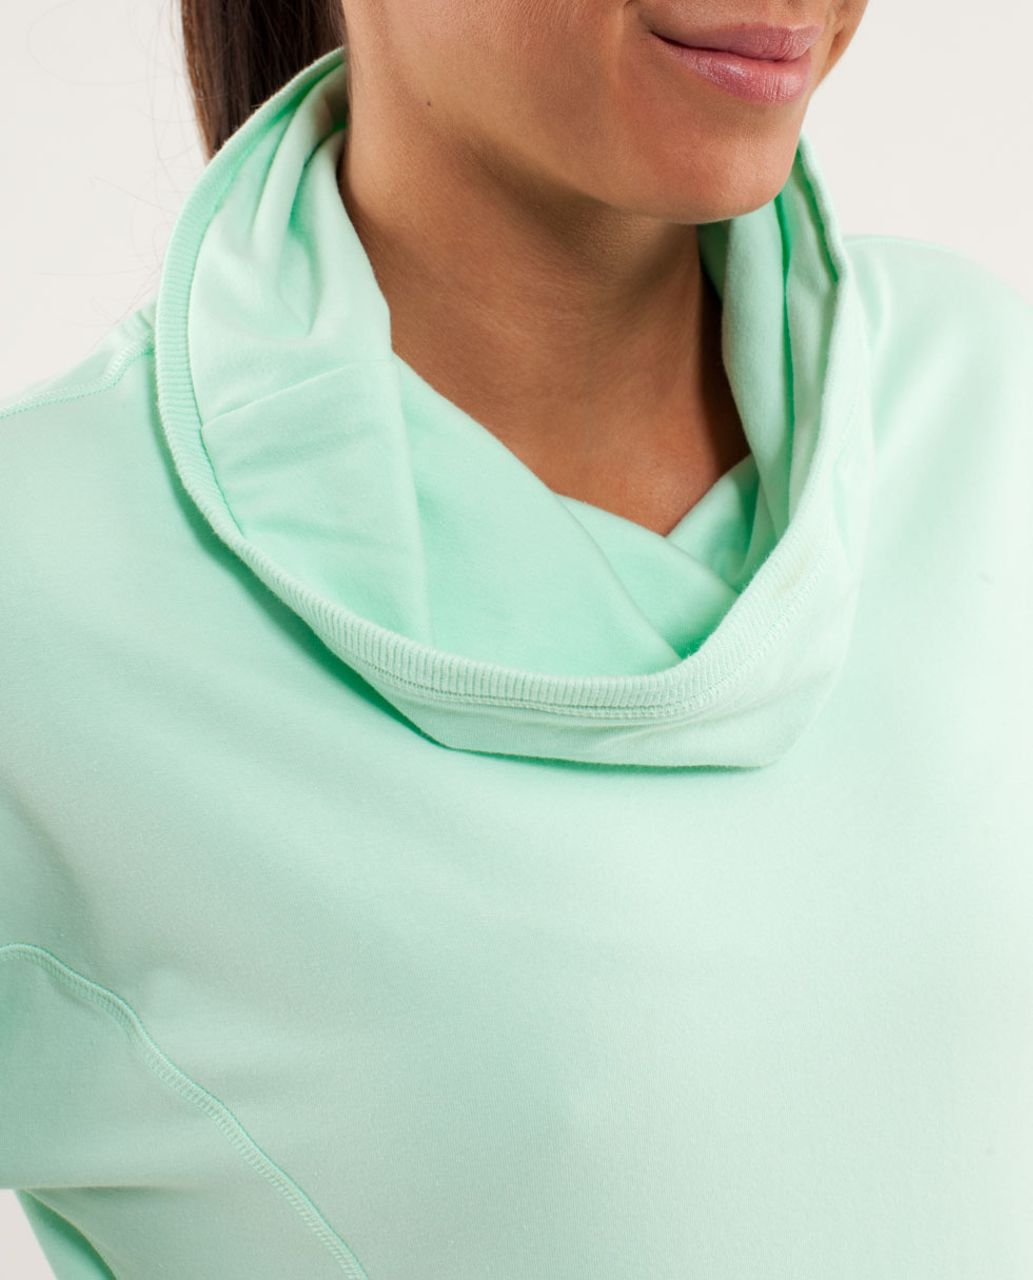 Lululemon Rest Day Pullover - Fresh Teal